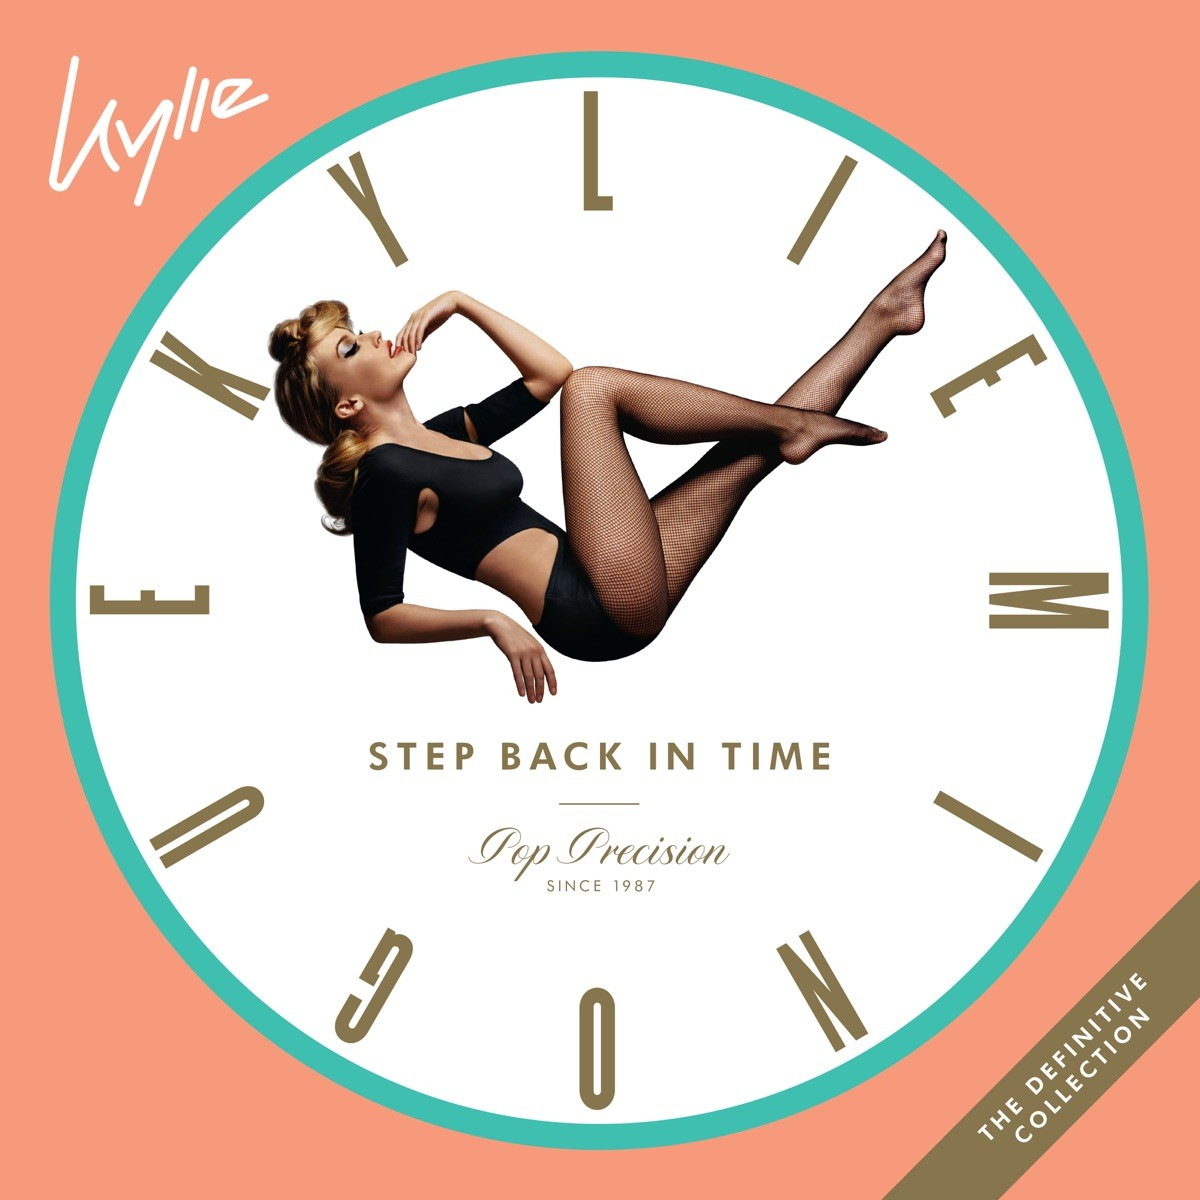 Kylie Minogue - Step Back in Time: The Definitive Collection CD - 5053848415